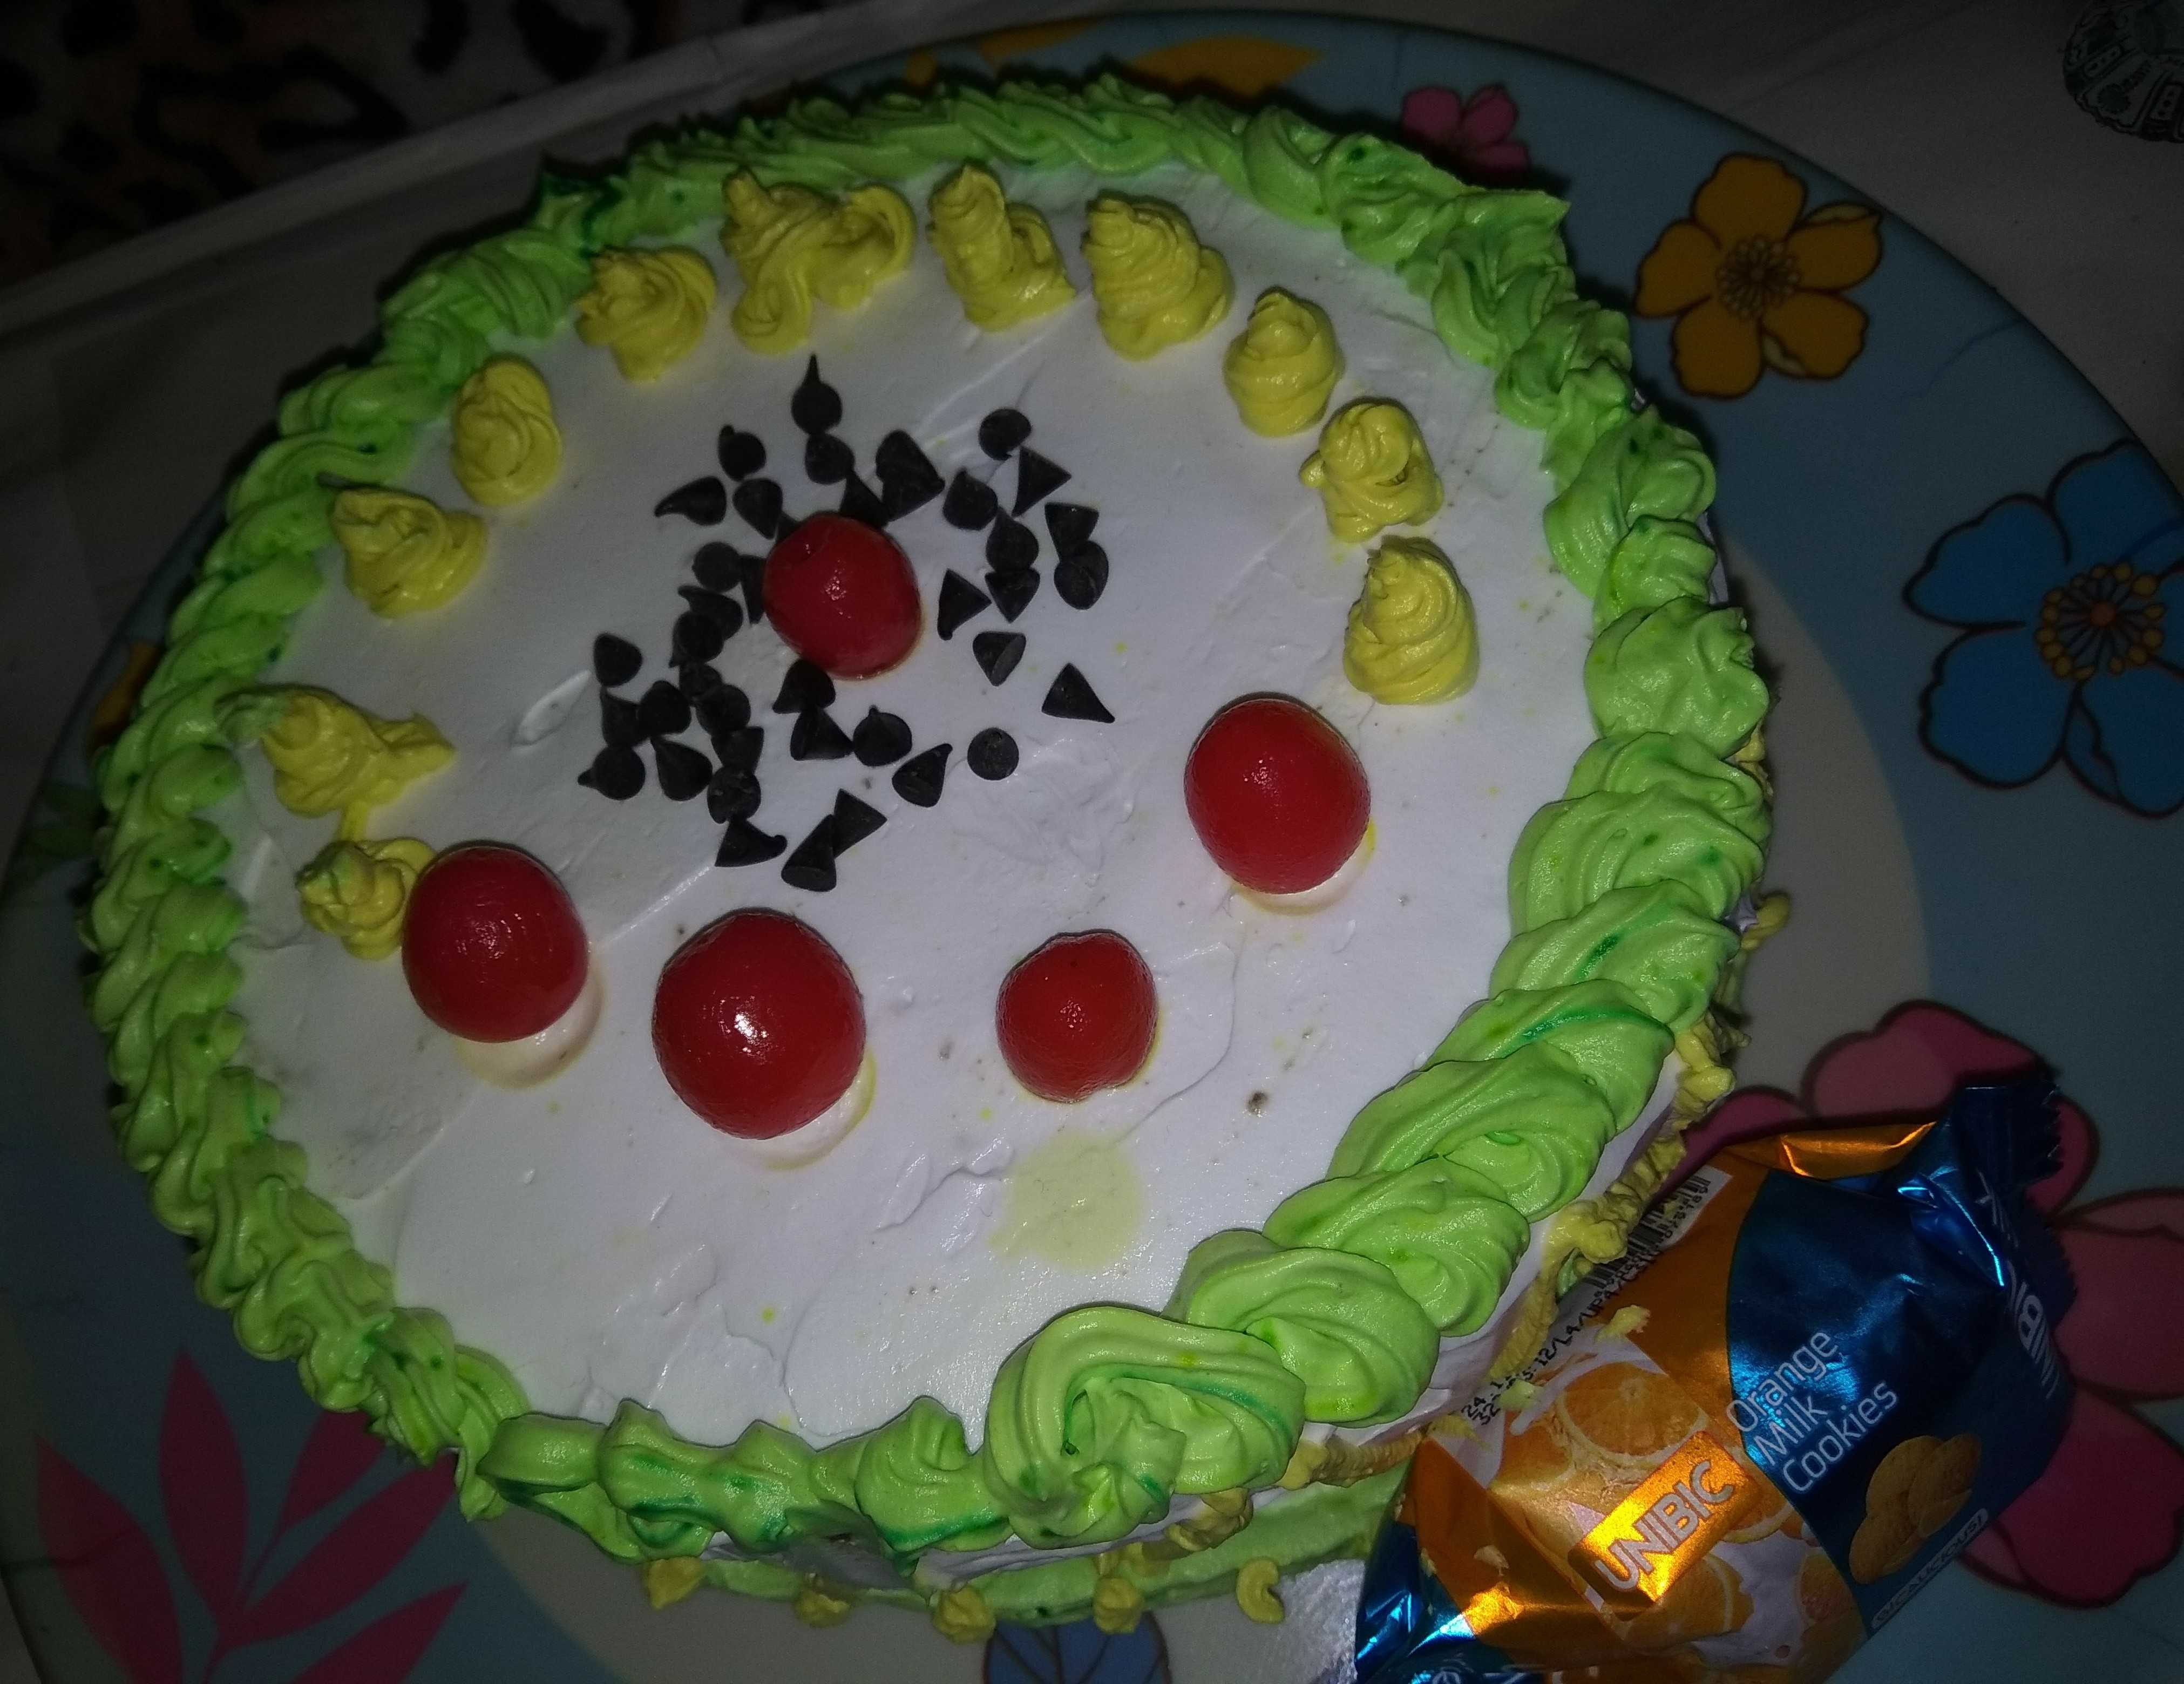 Unibic Buiscuit Chocolate Cake